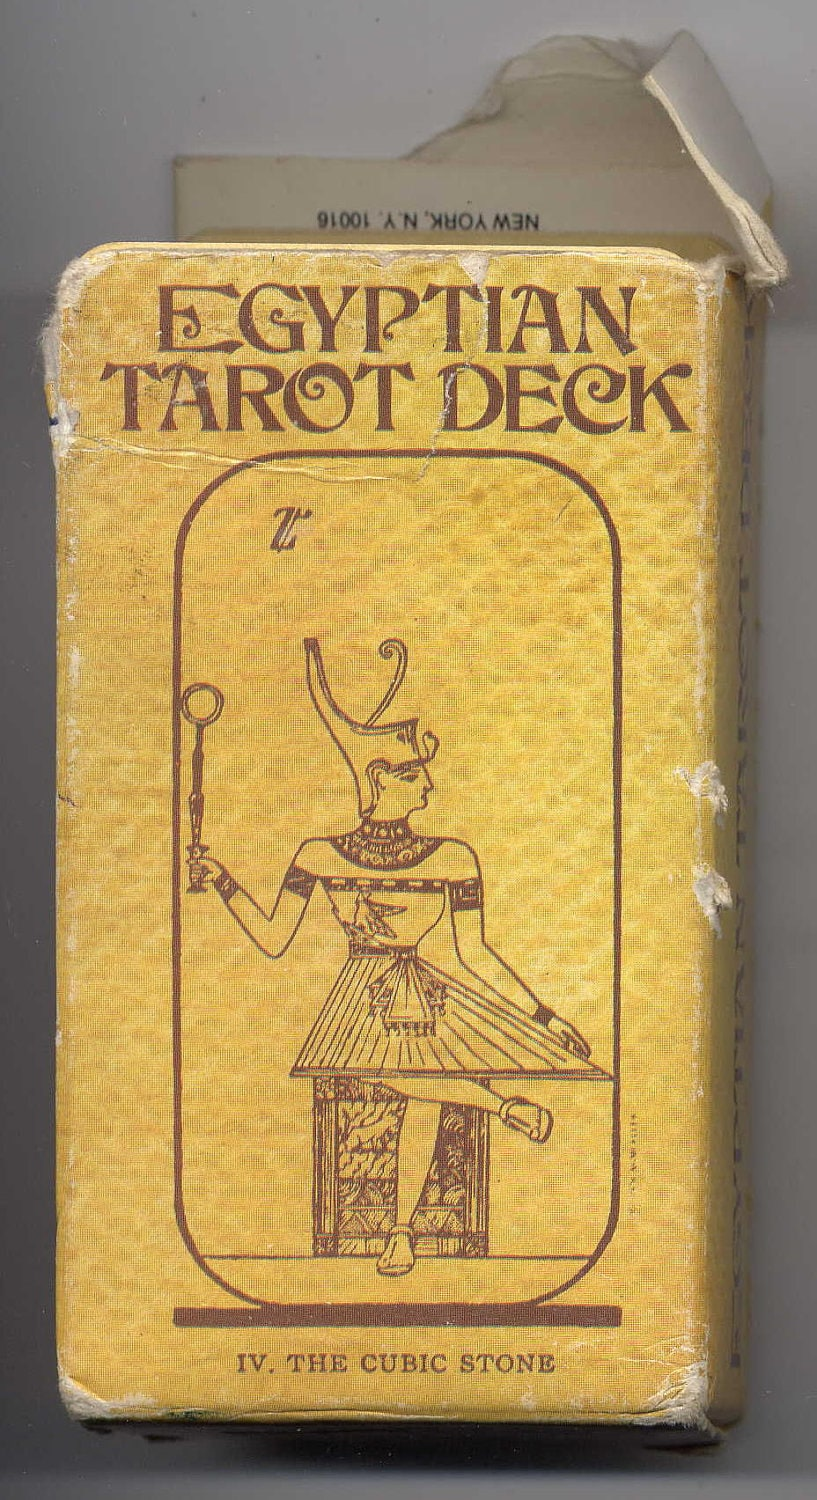 Egyptian Tarot Kit Deck Book Loscar: Egyptian Tarot Deck By Comte Saint Germain